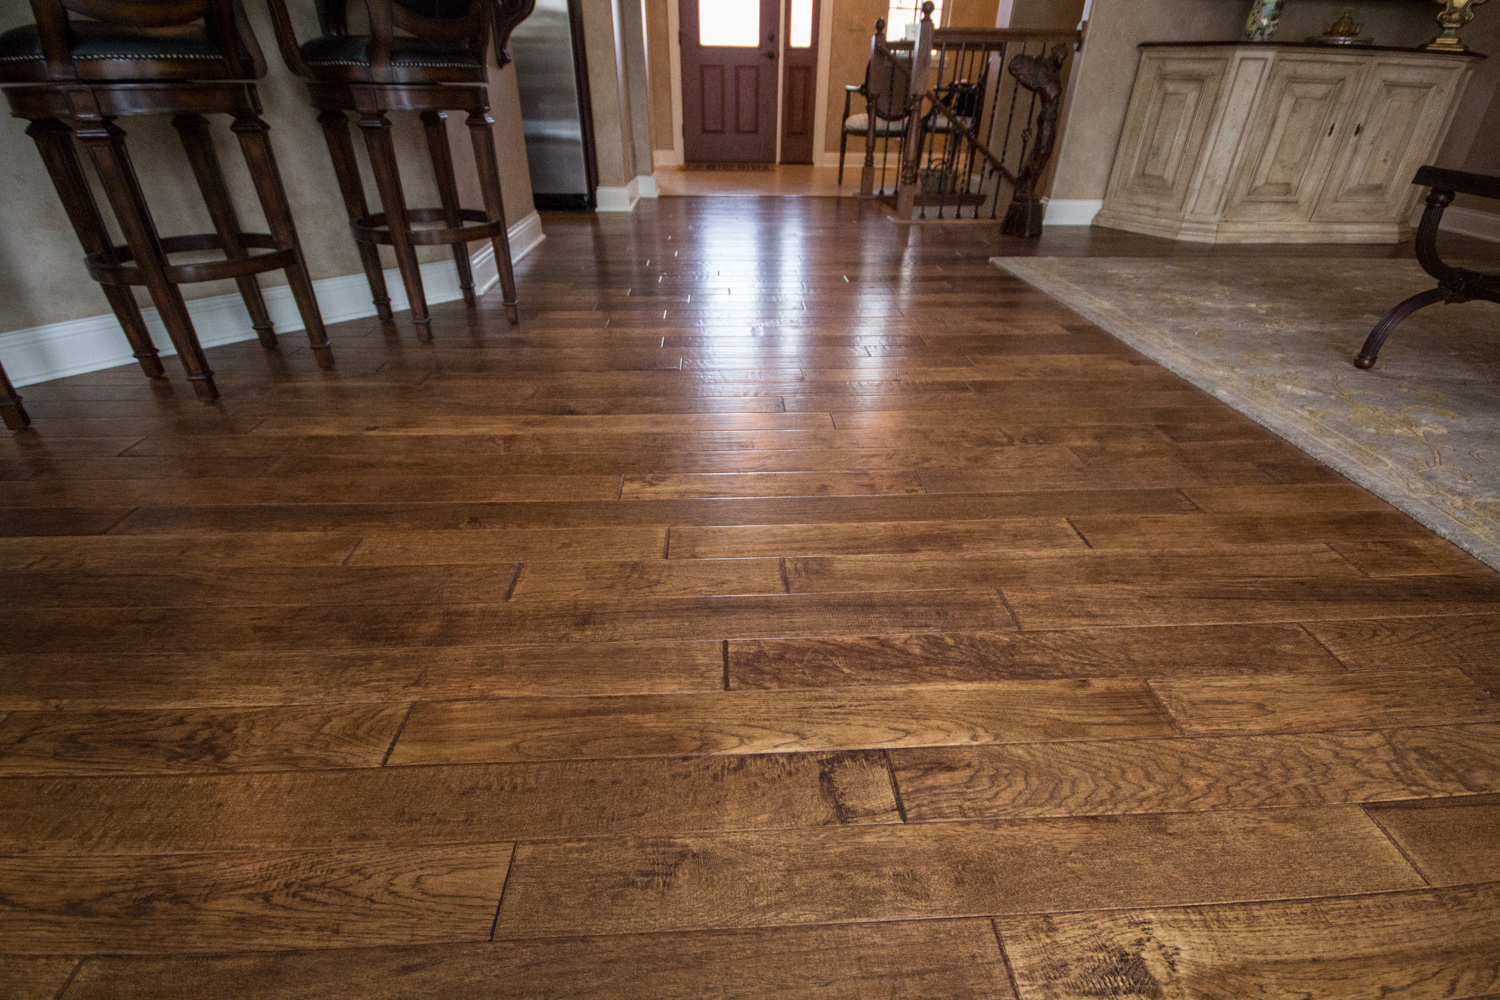 Klm builders inc quick review on flooring options for for Hardwood floor choices